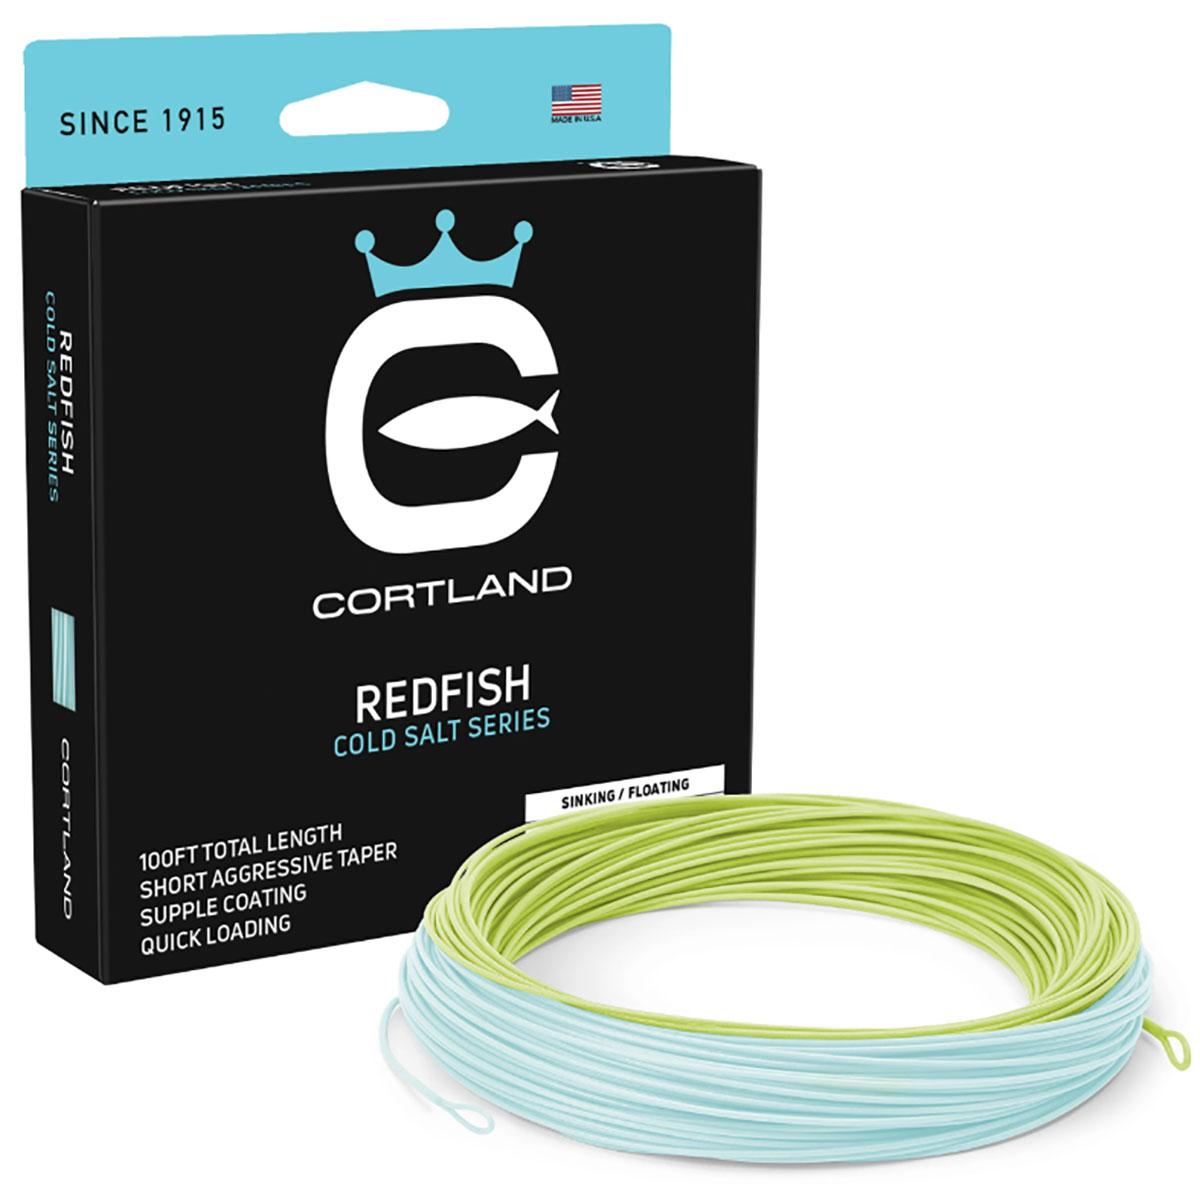 Cortland Cold Salt Redfish Fly Line